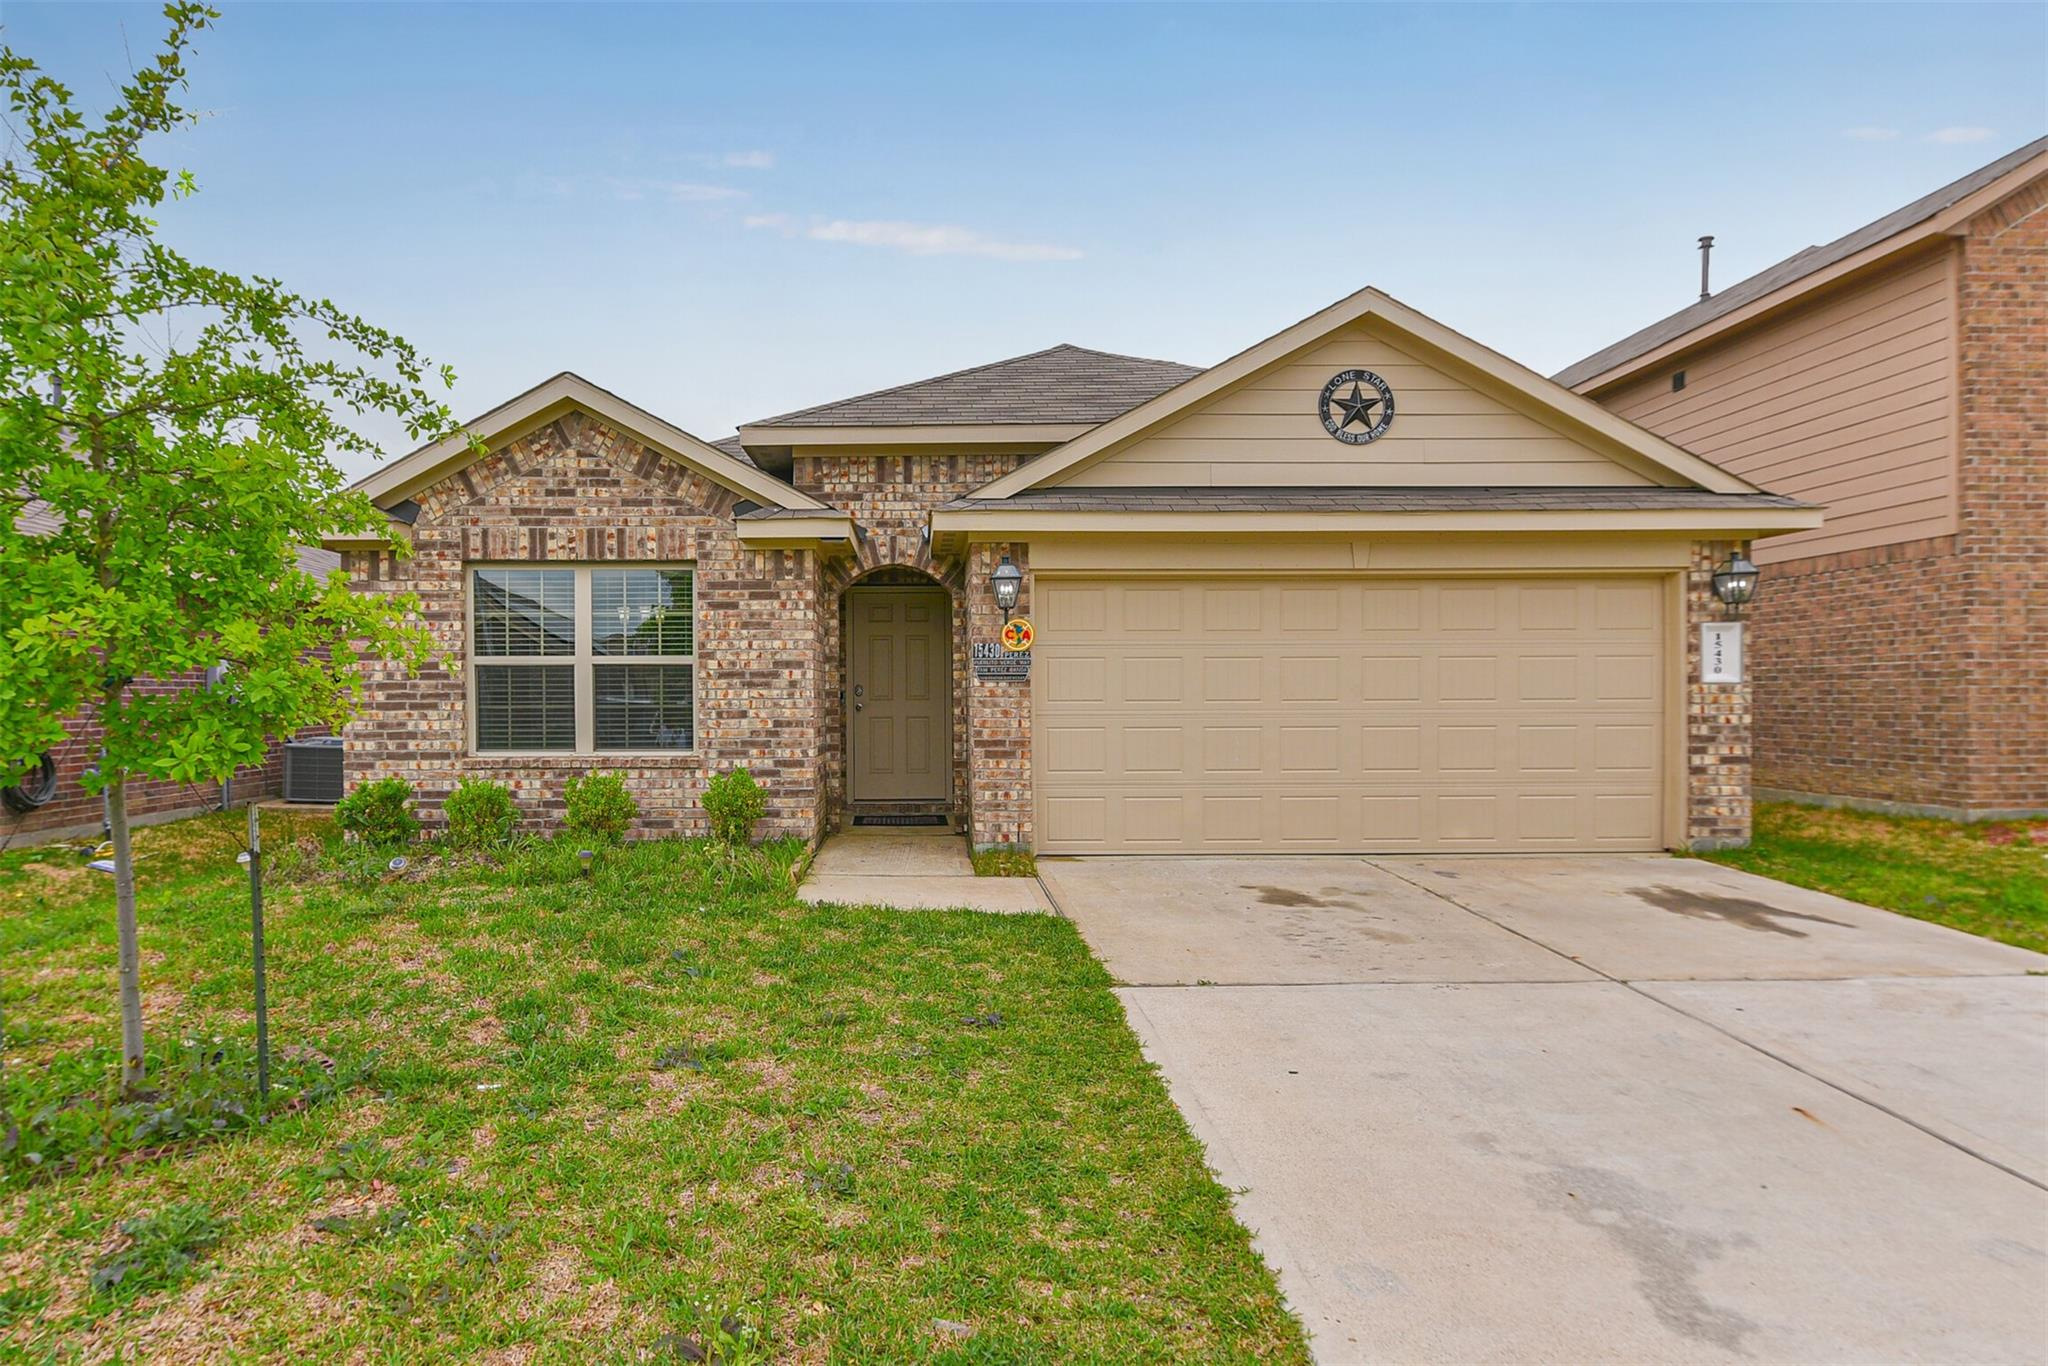 15430 Pueblito Verde Way Property Photo - Channelview, TX real estate listing